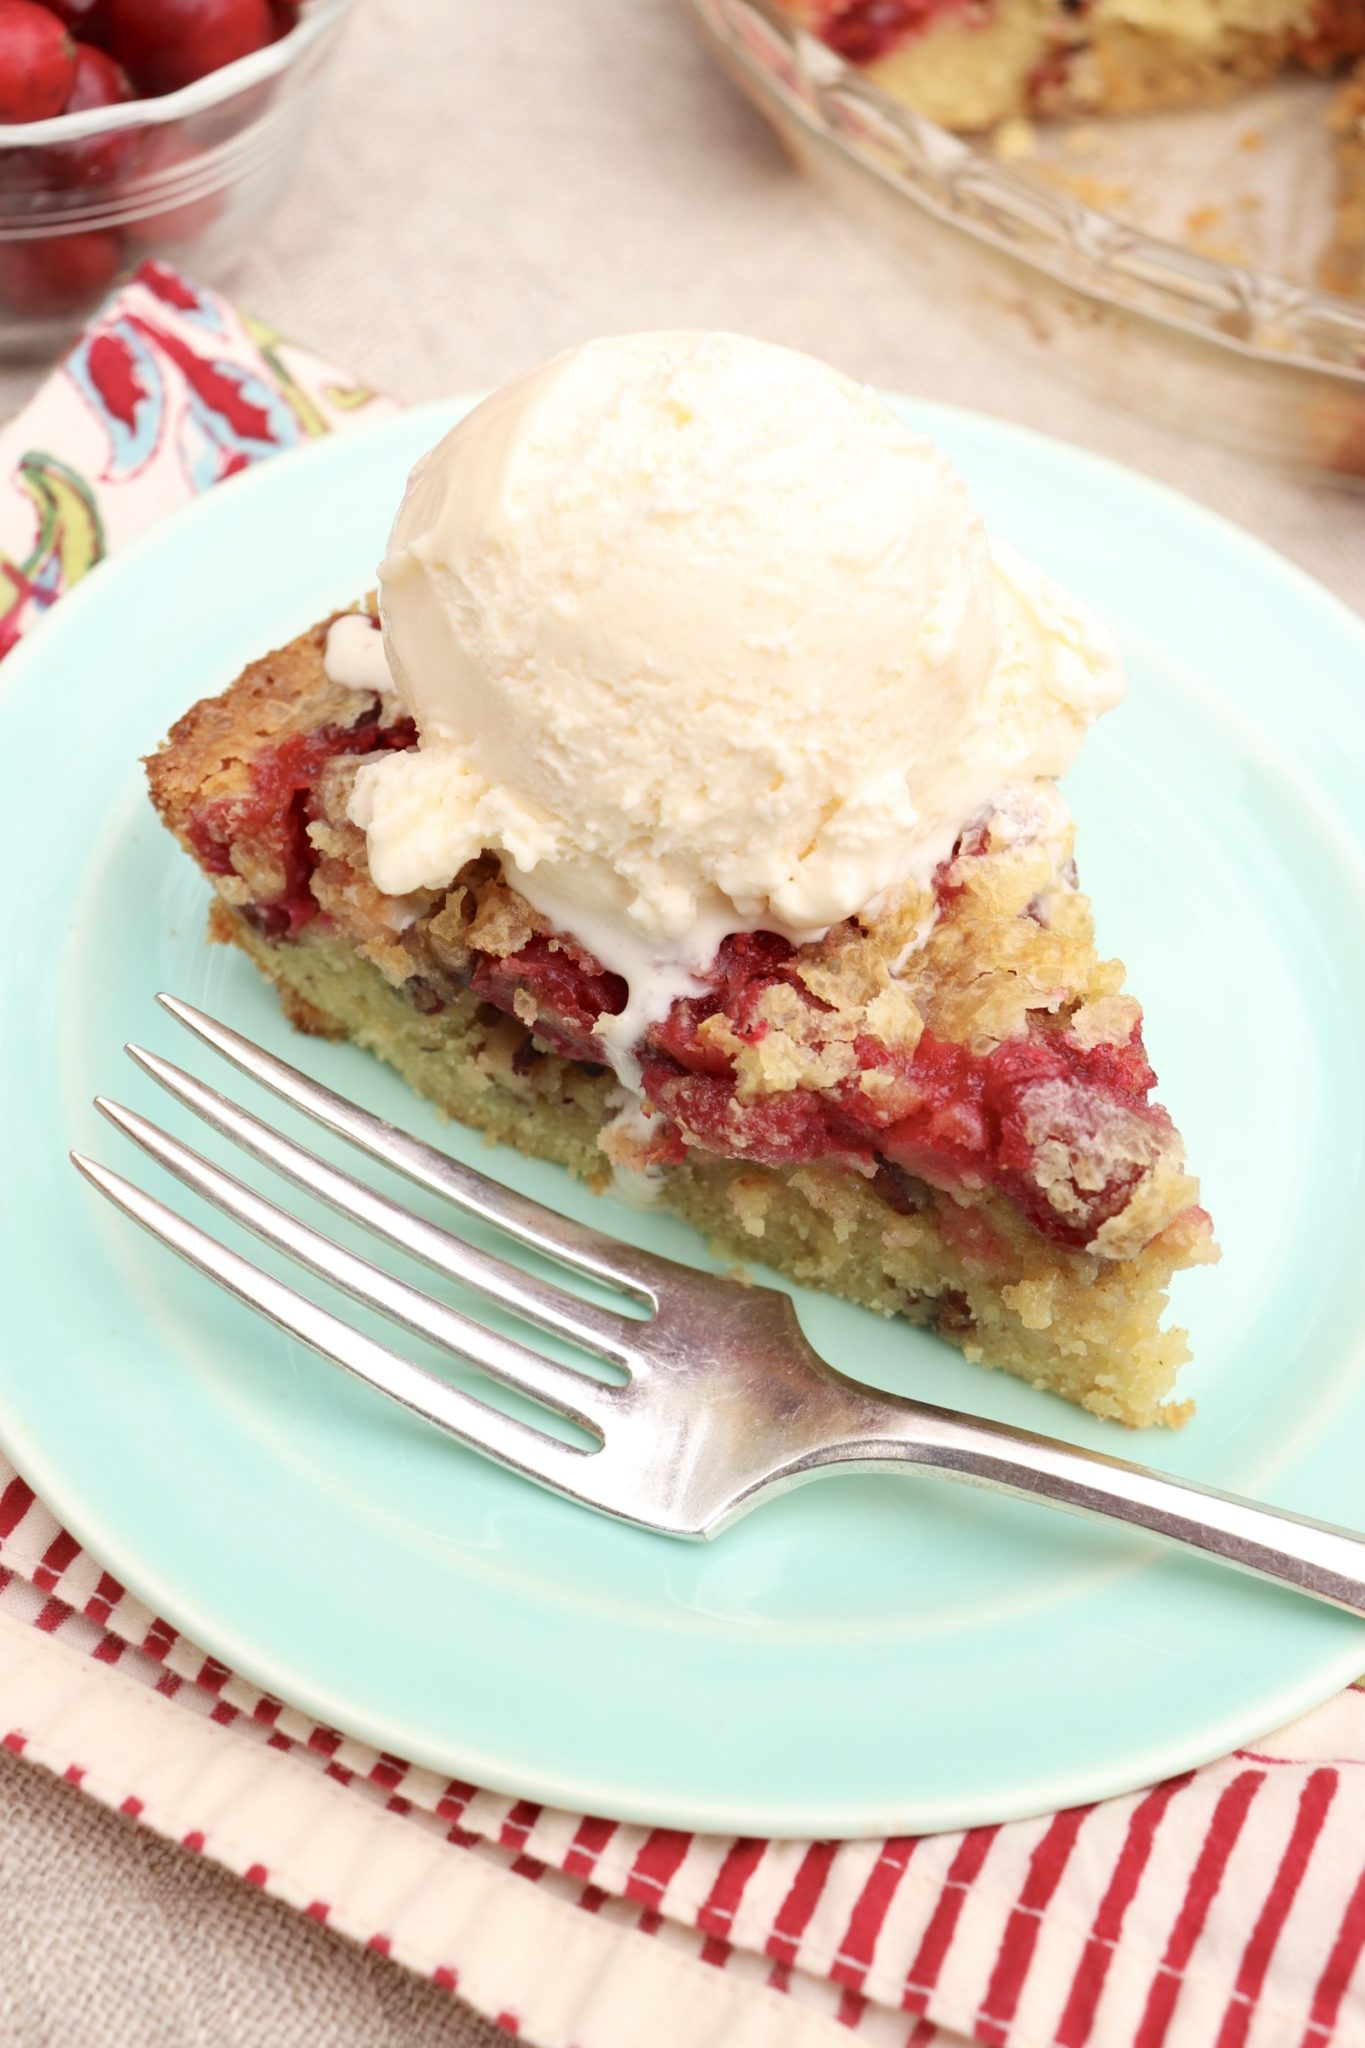 Crustless Cranberry Pie-festive, seasonal and so easy to make with pantry staples, this sweet-tart treat is fruit forward like a pie but somewhat cakier in texture.